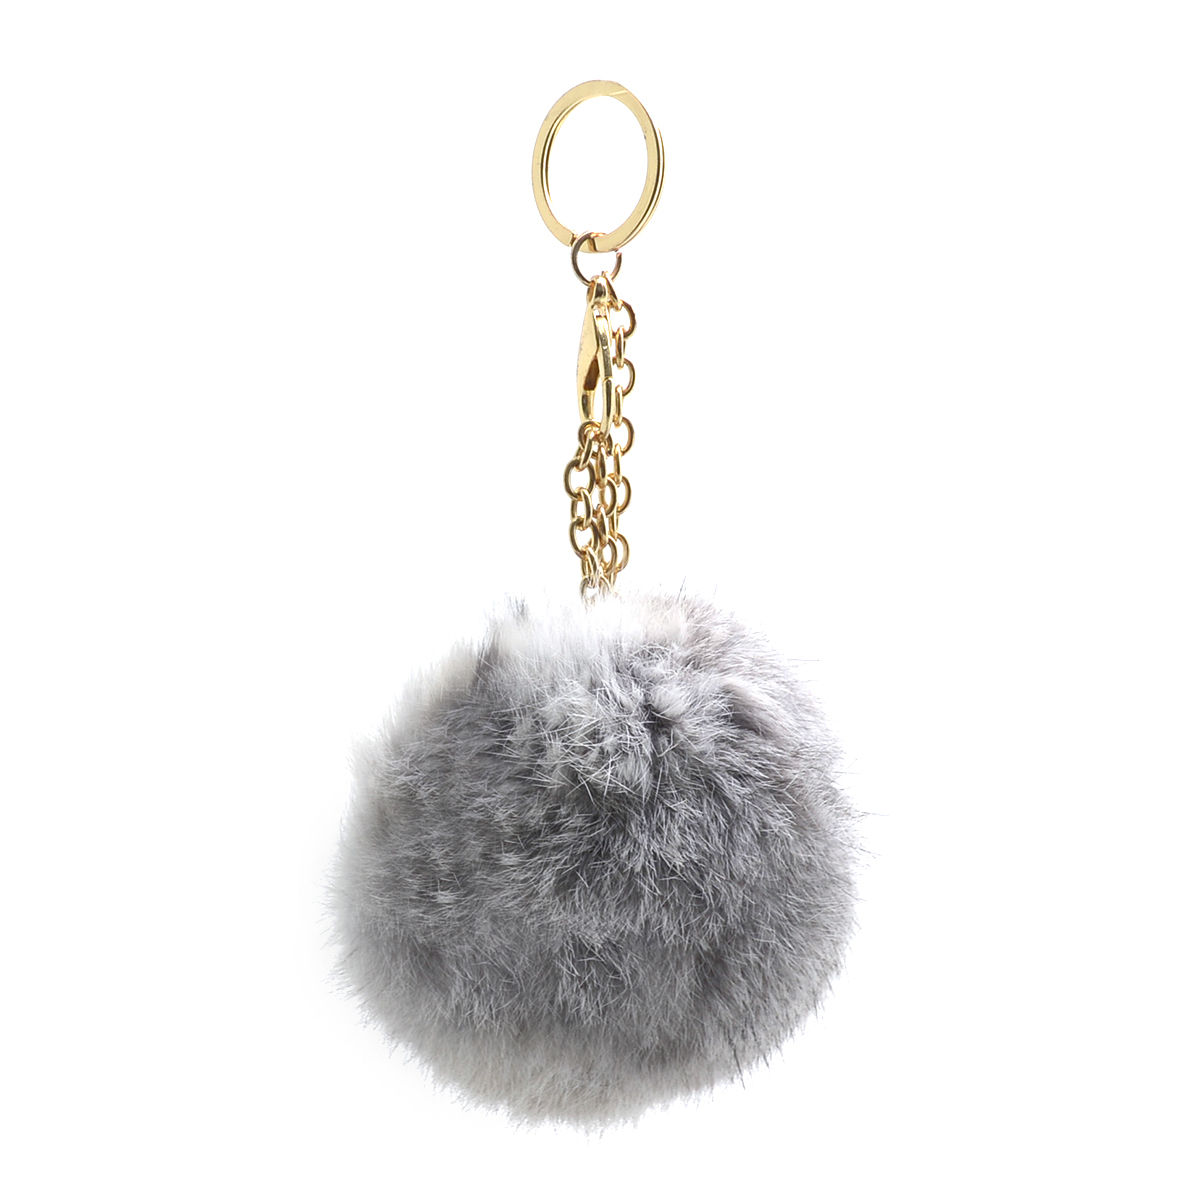 Faux Fur Key Chain